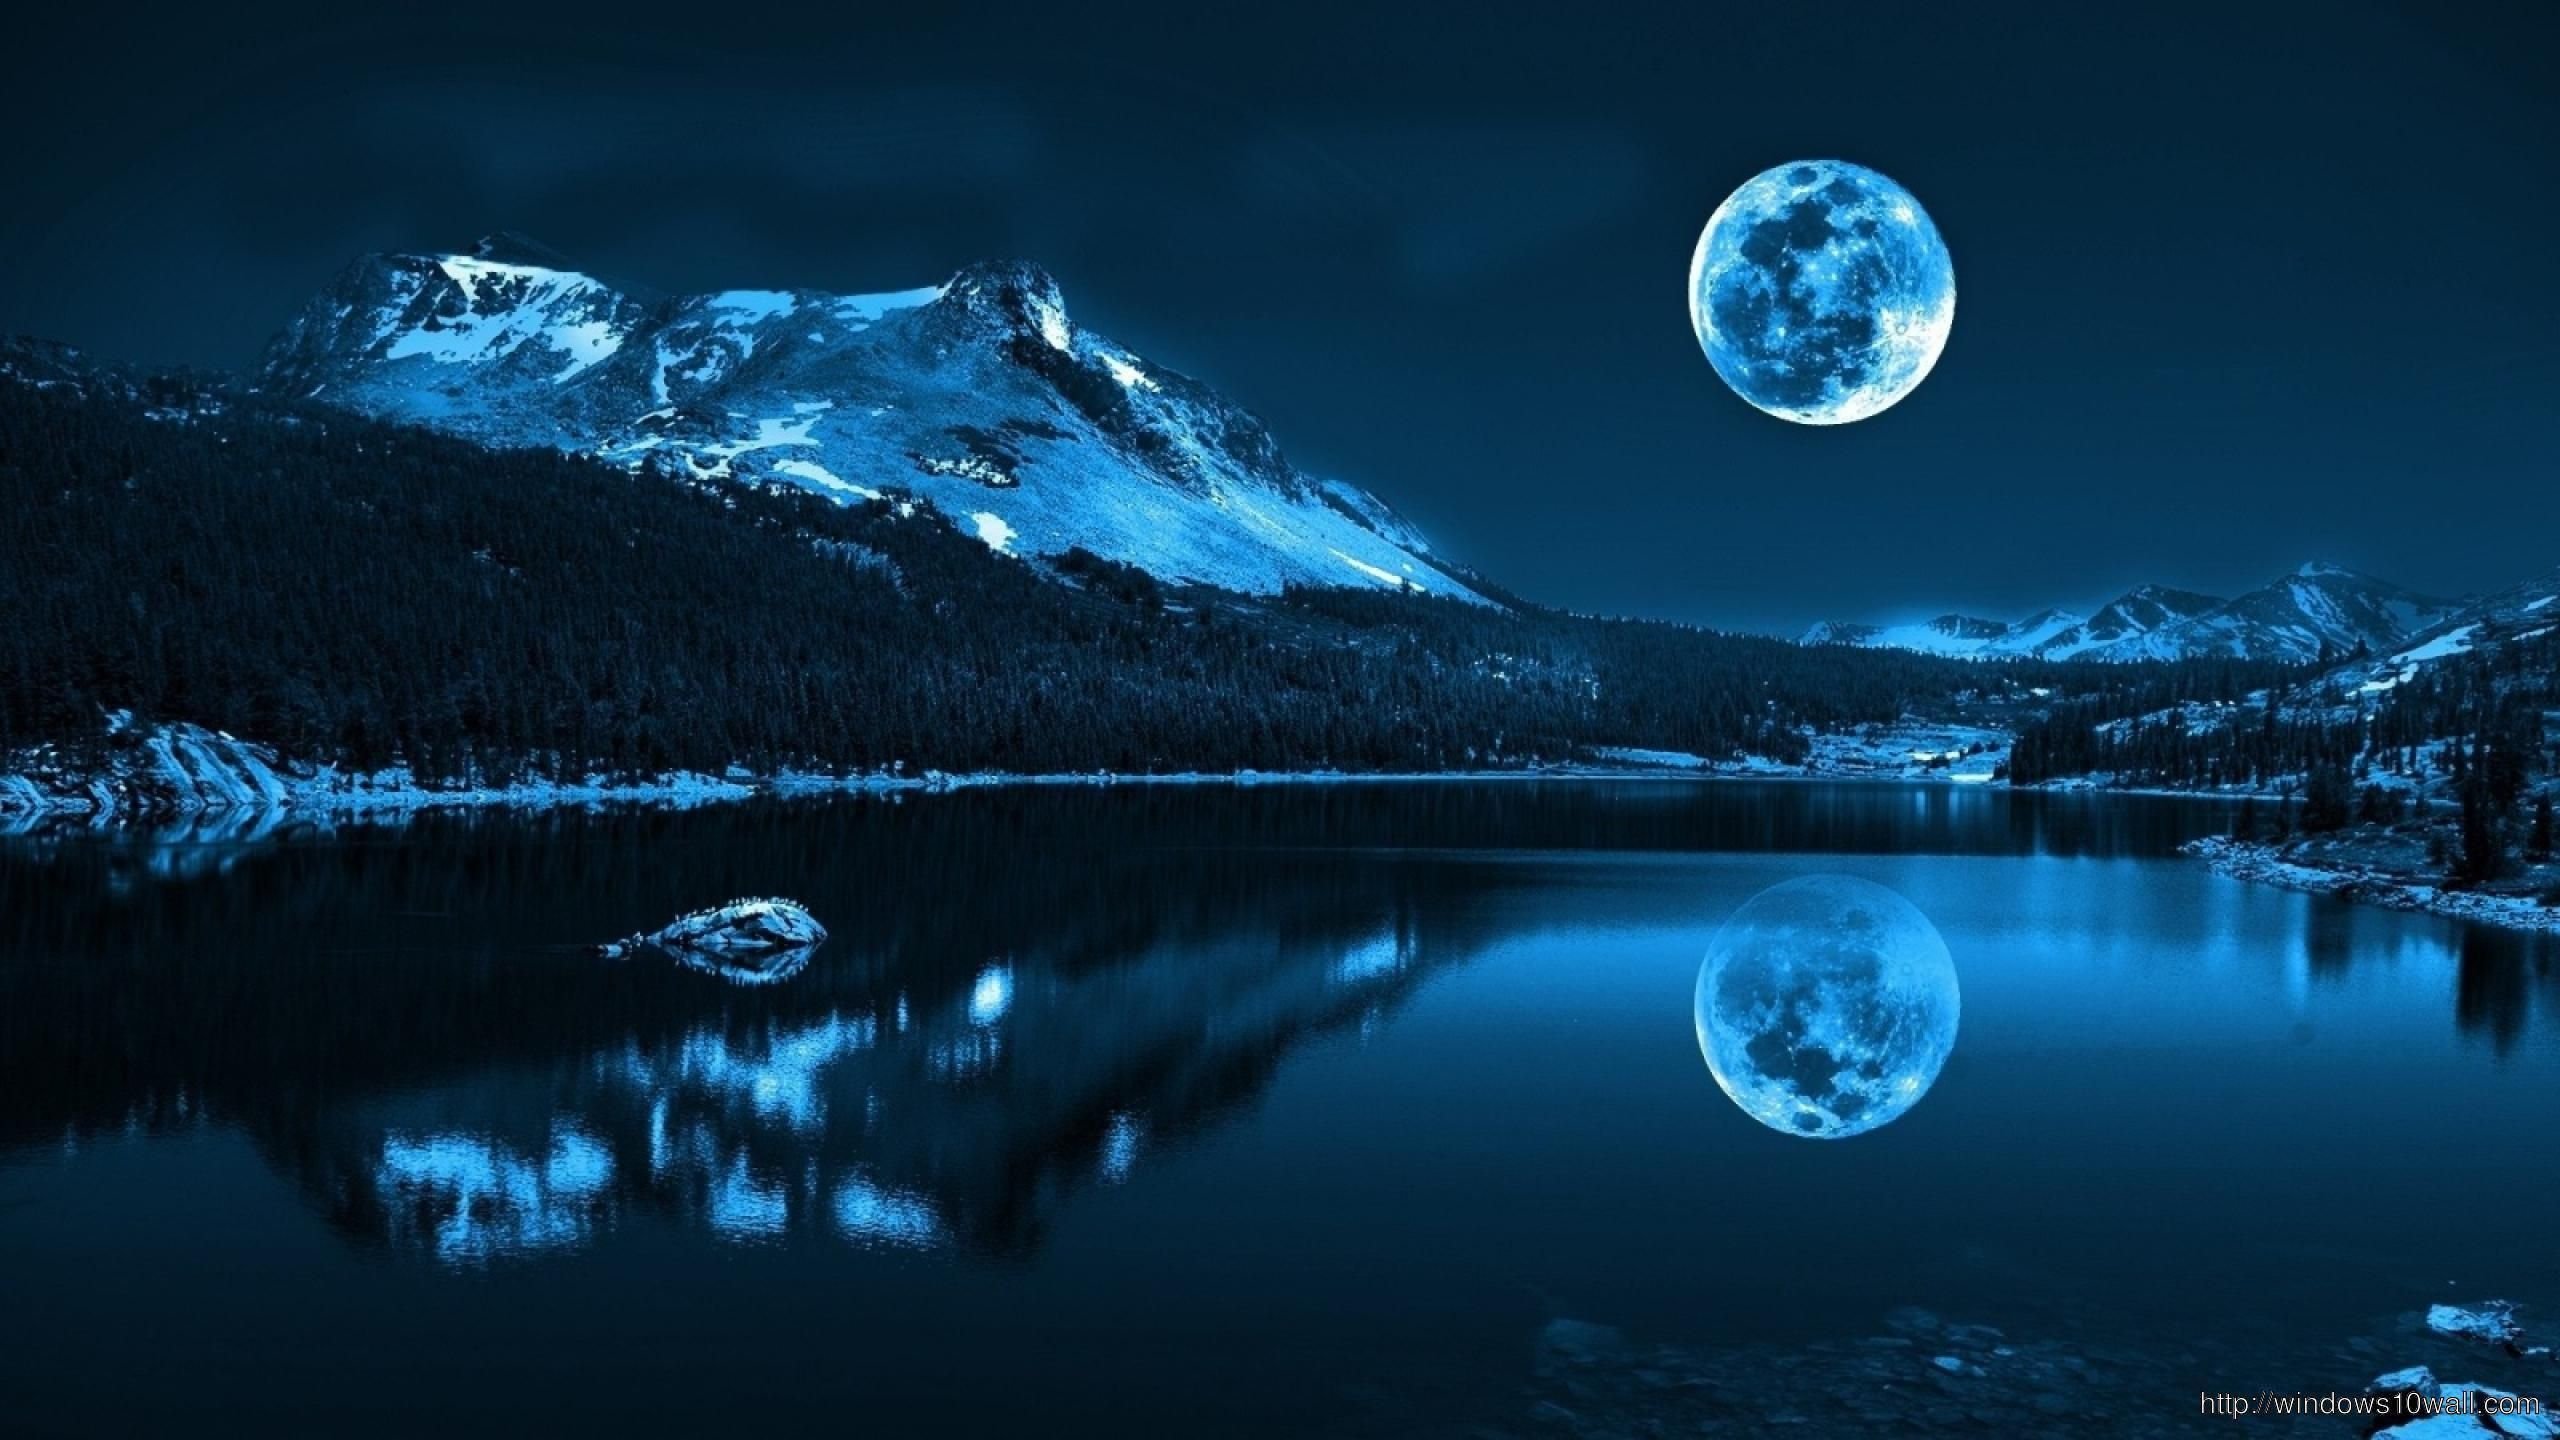 Super Moon Background Wallpaper windows 10 Wallpapers